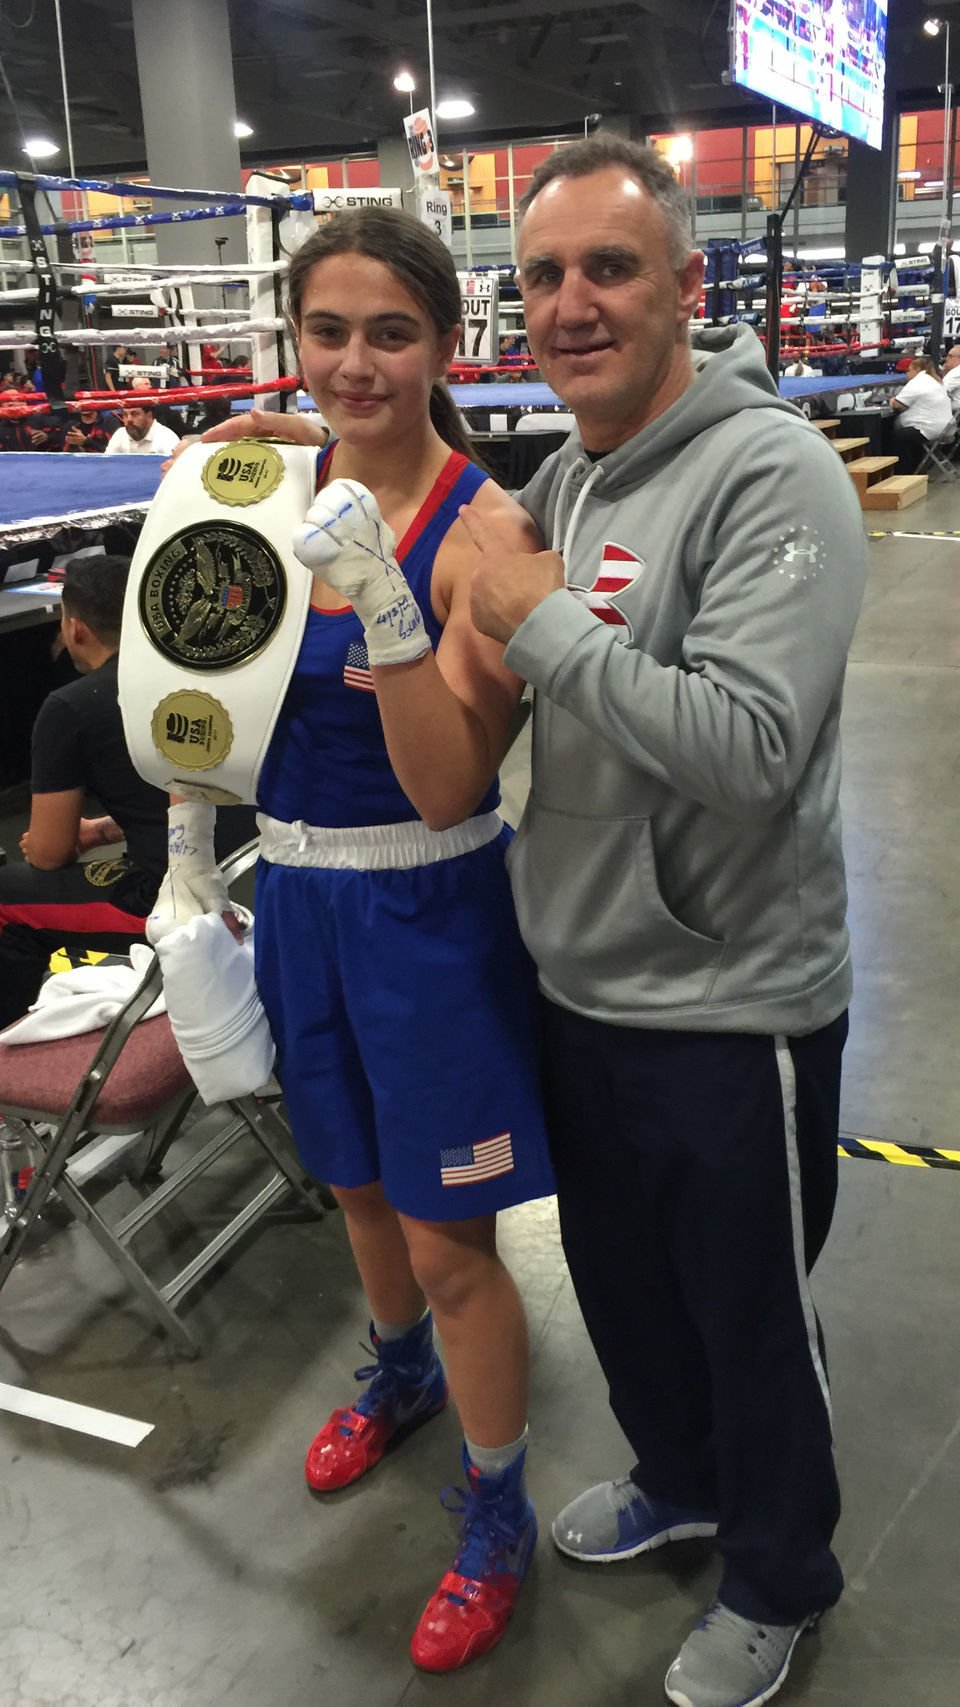 Alexis Lavarine has a puncher's chance of getting to Tokyo Olympics in 2020